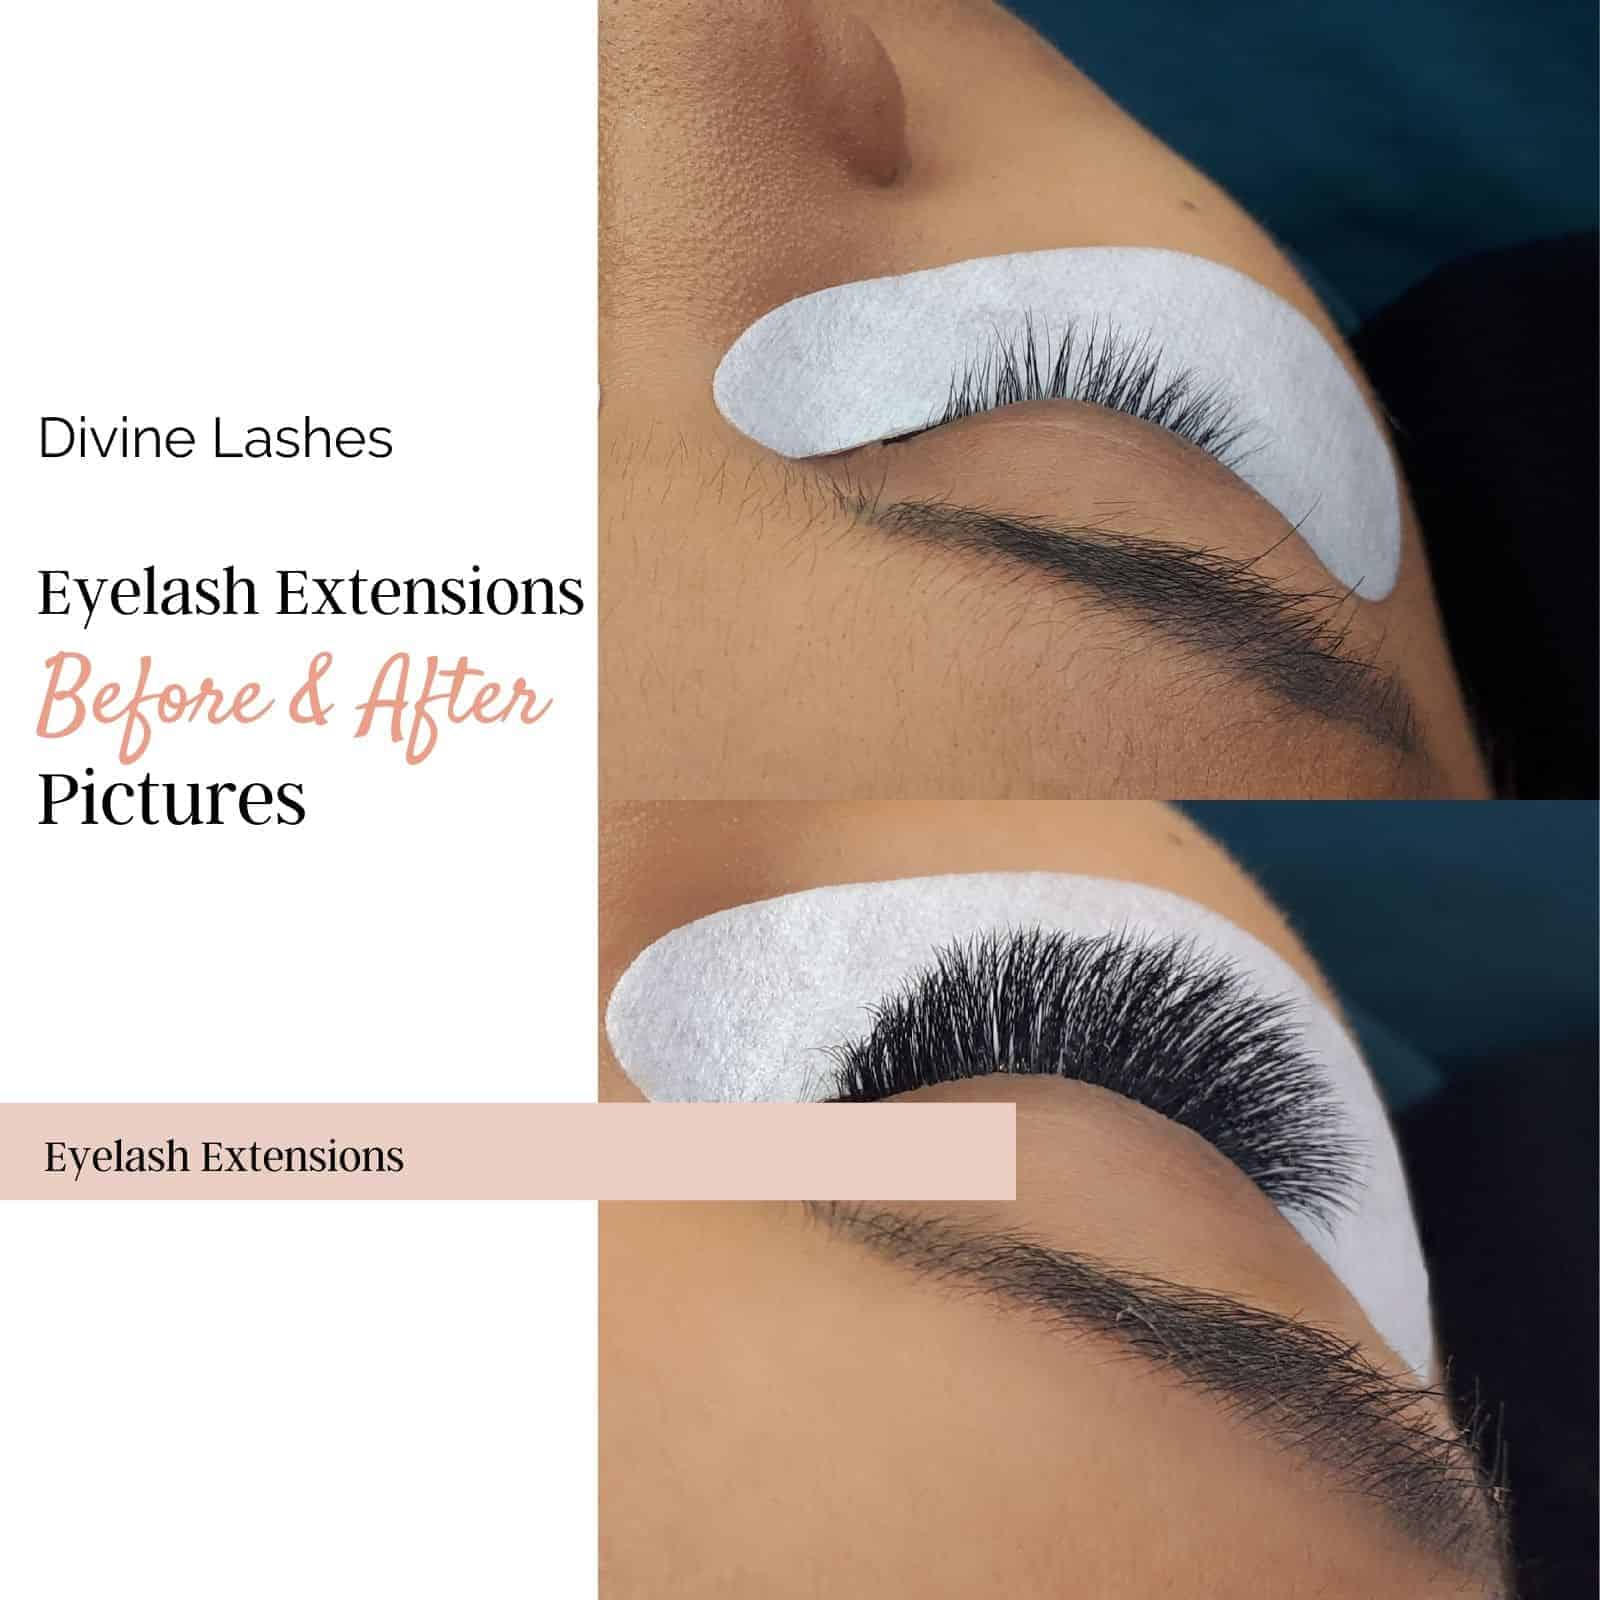 Before and after picture of a woman with eyelash extensions